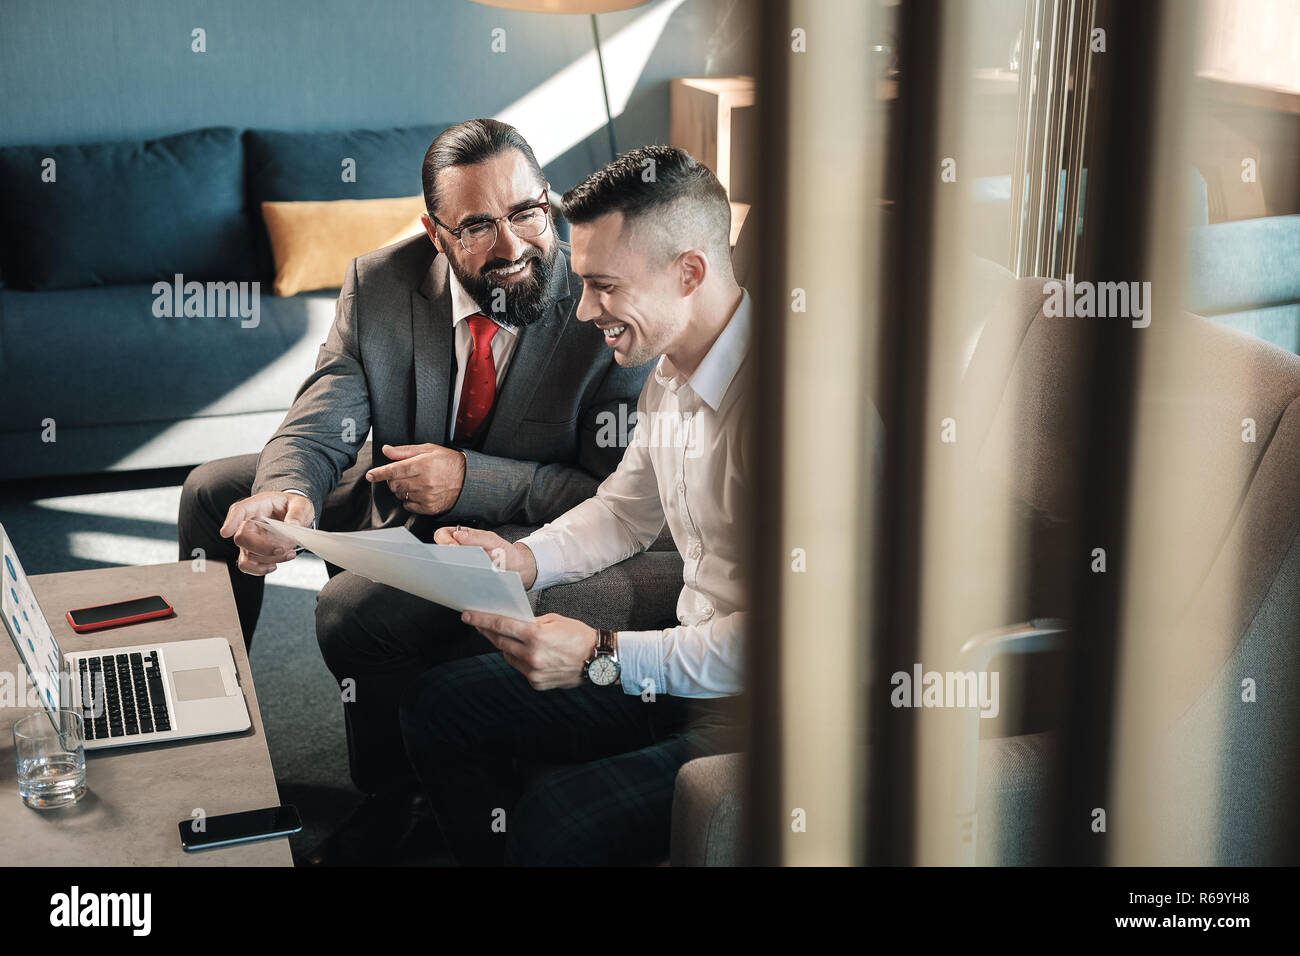 Two prosperous business partners laughing while communicating - Stock Image